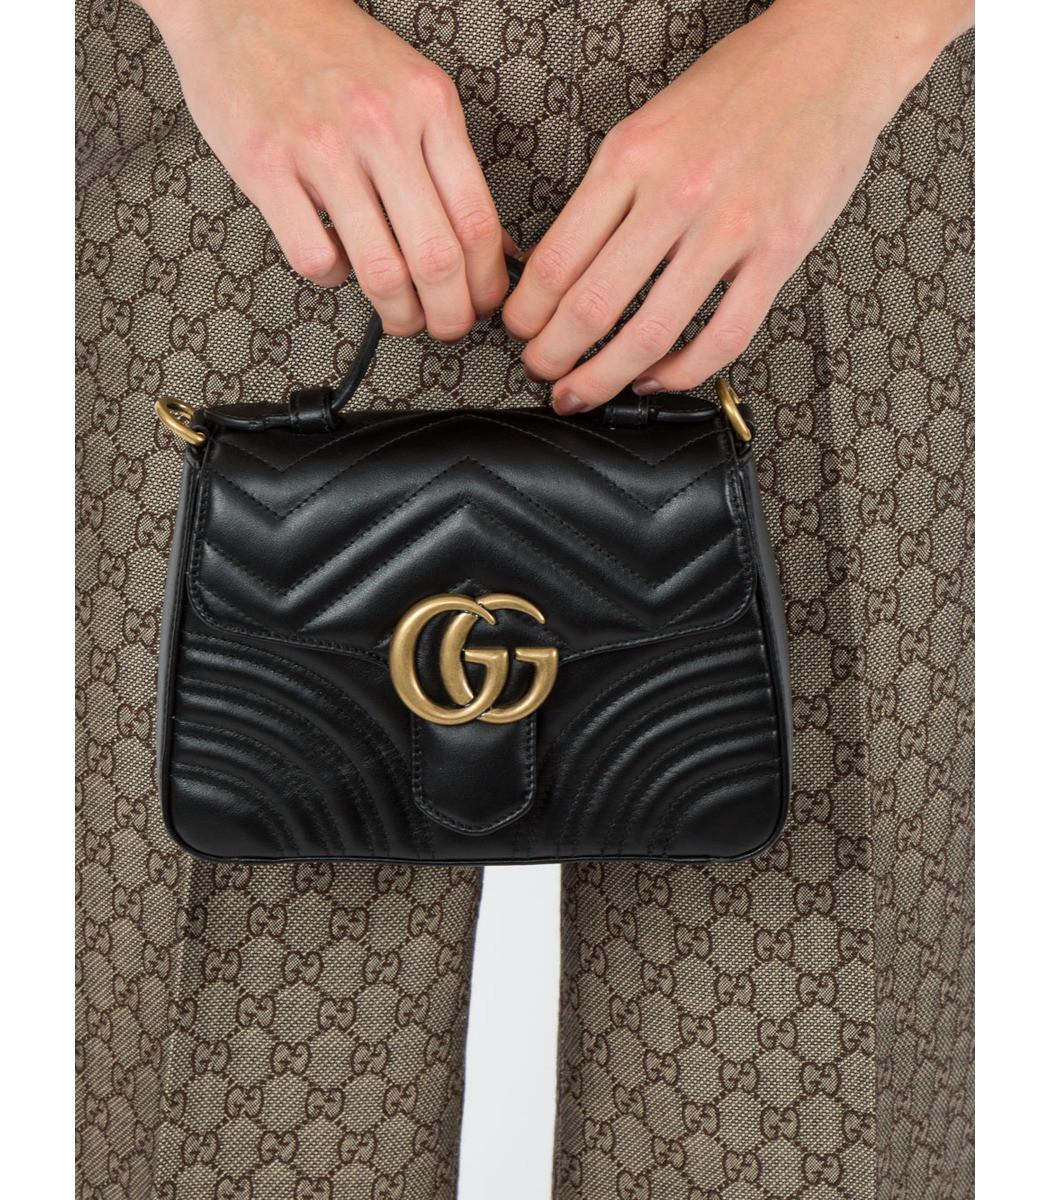 f05f91fcd8fcd4 Gucci Gg Marmont Small Top Handle Bag in Black - Lyst